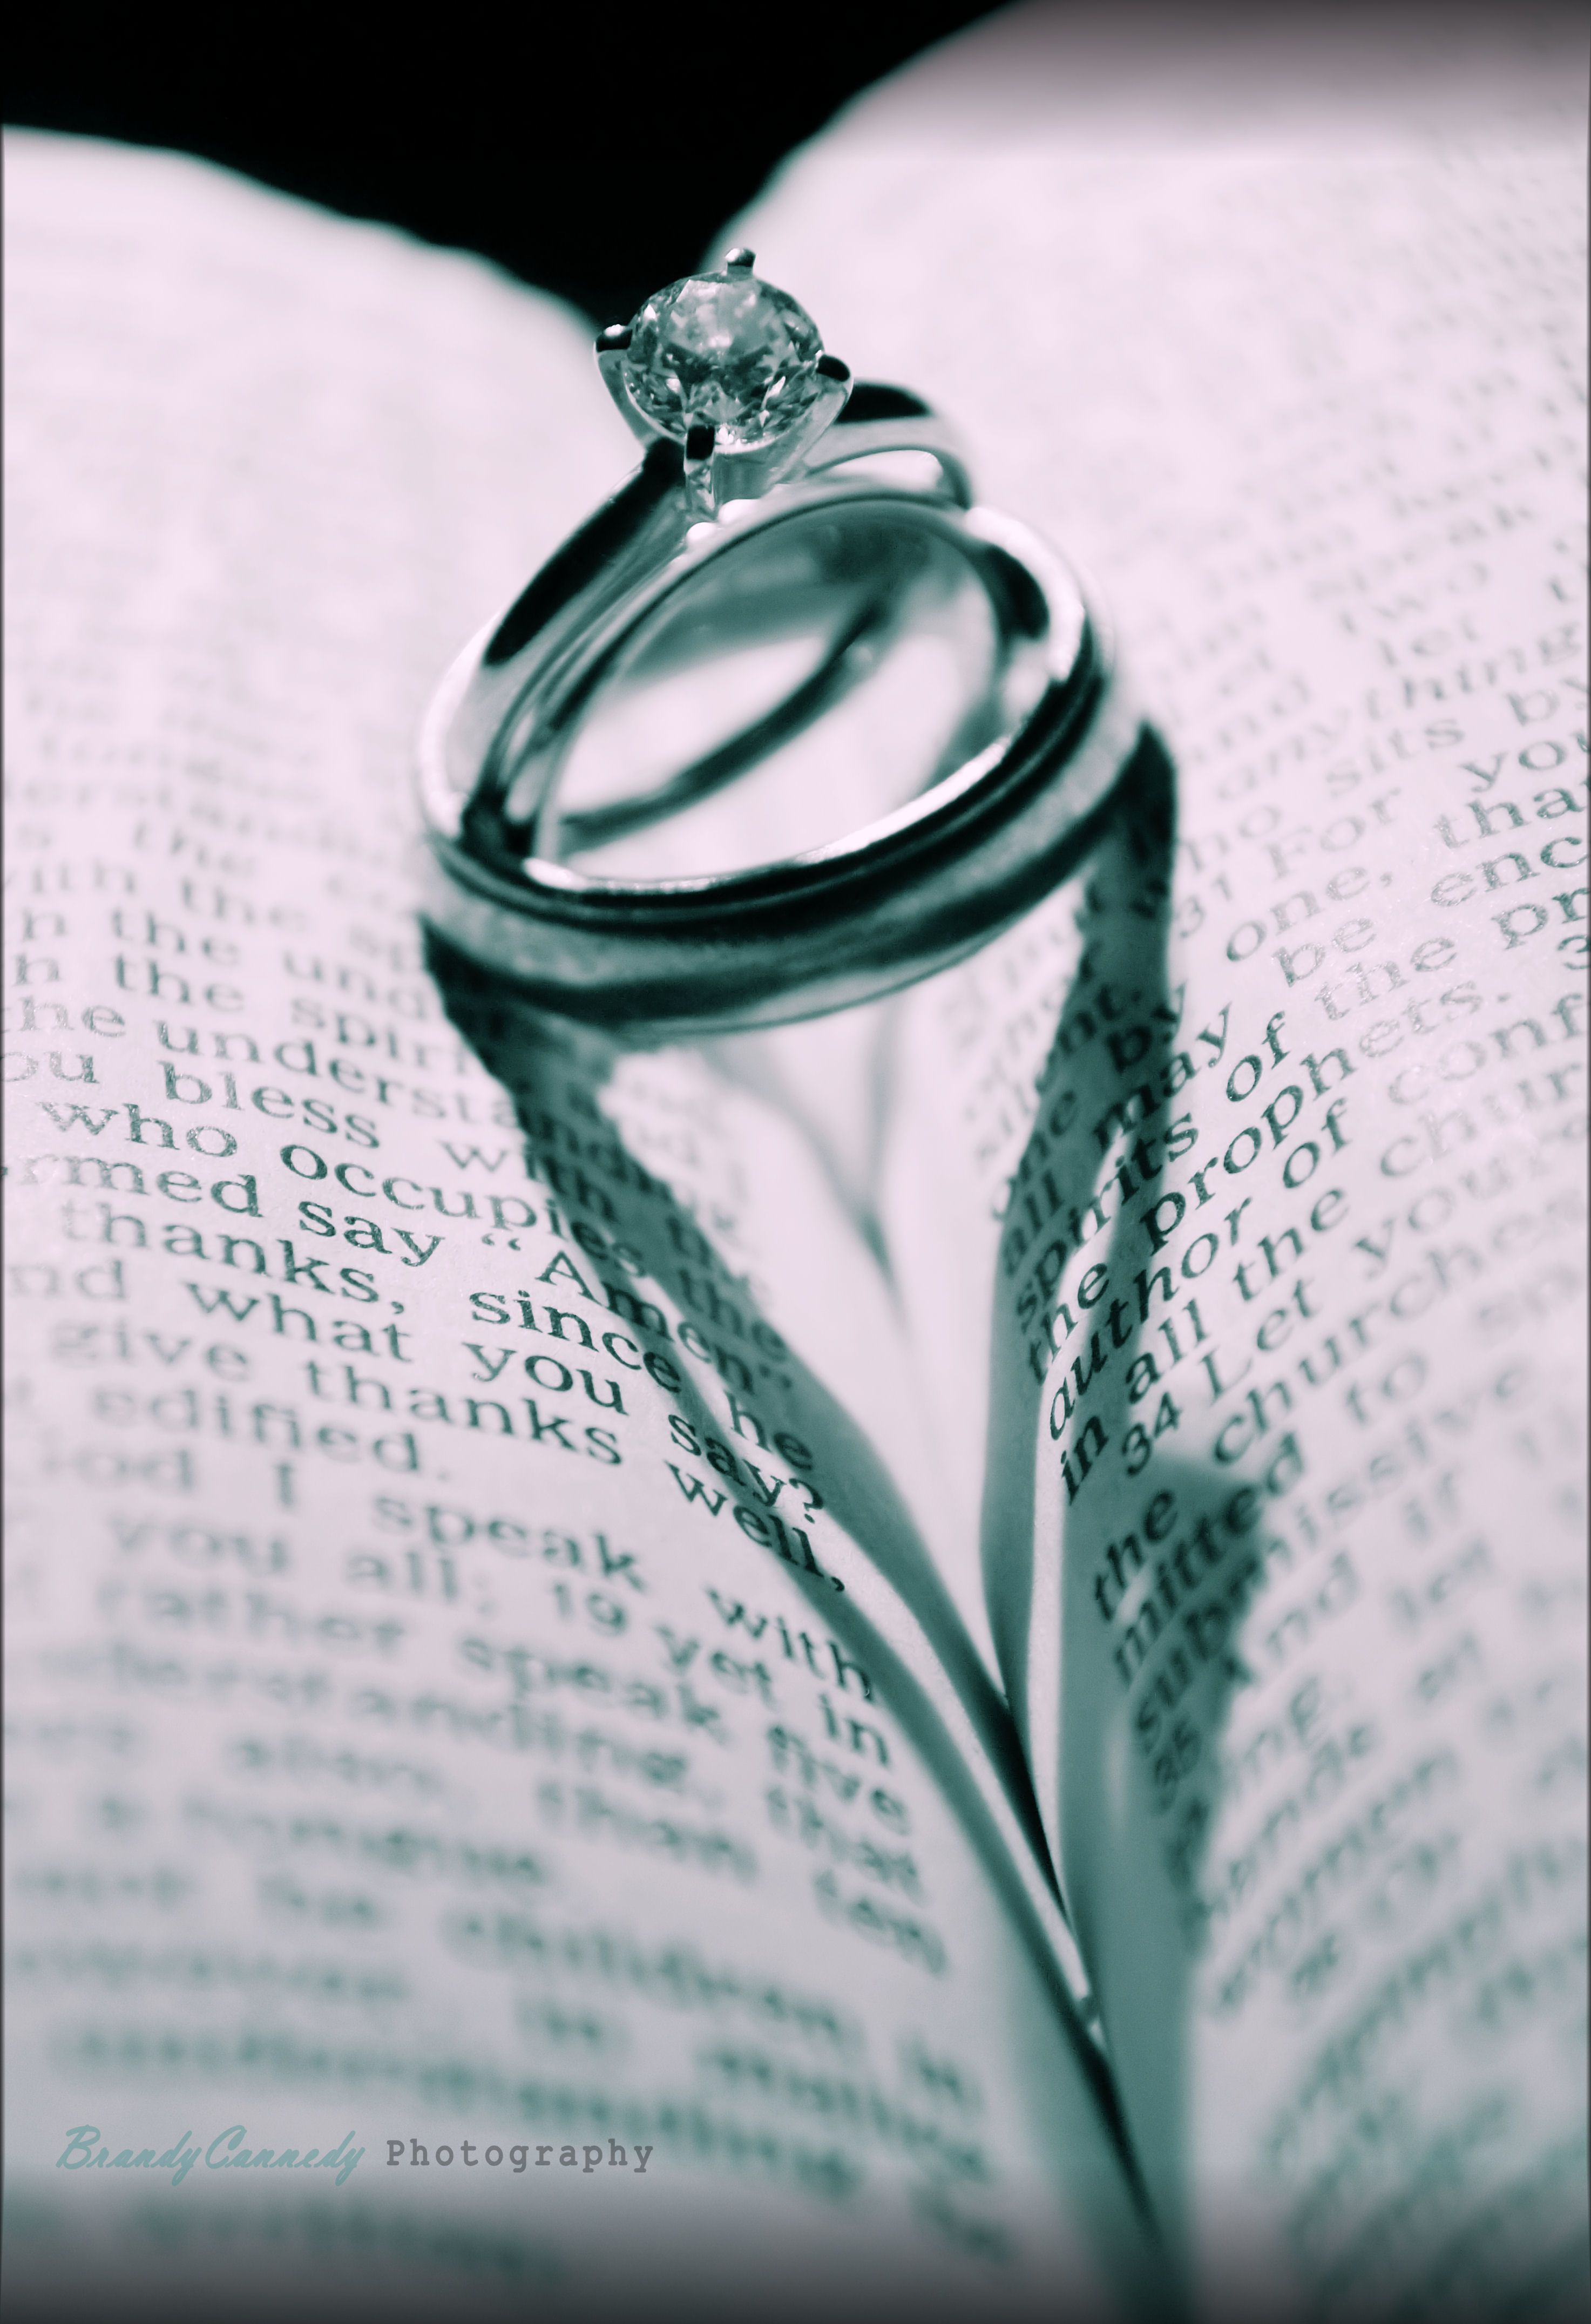 heart shadow with wedding rings on bible photography pinterest